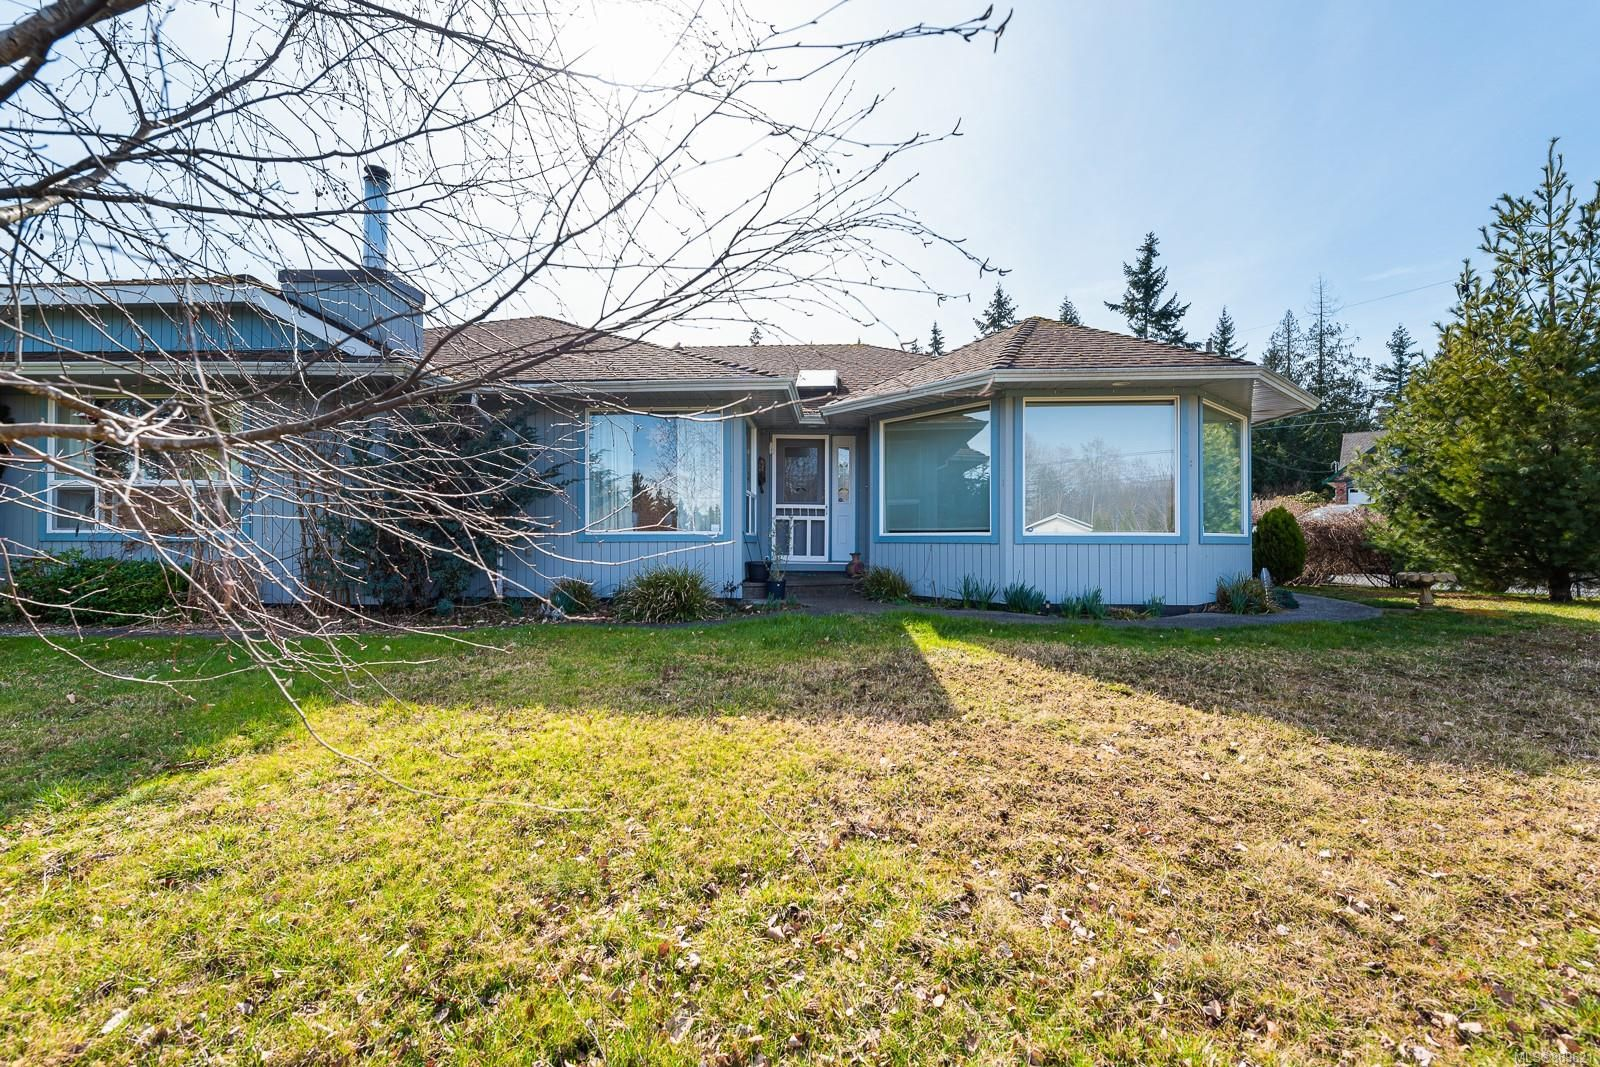 Main Photo: 155 Bayridge Pl in : PQ Bowser/Deep Bay House for sale (Parksville/Qualicum)  : MLS®# 869621